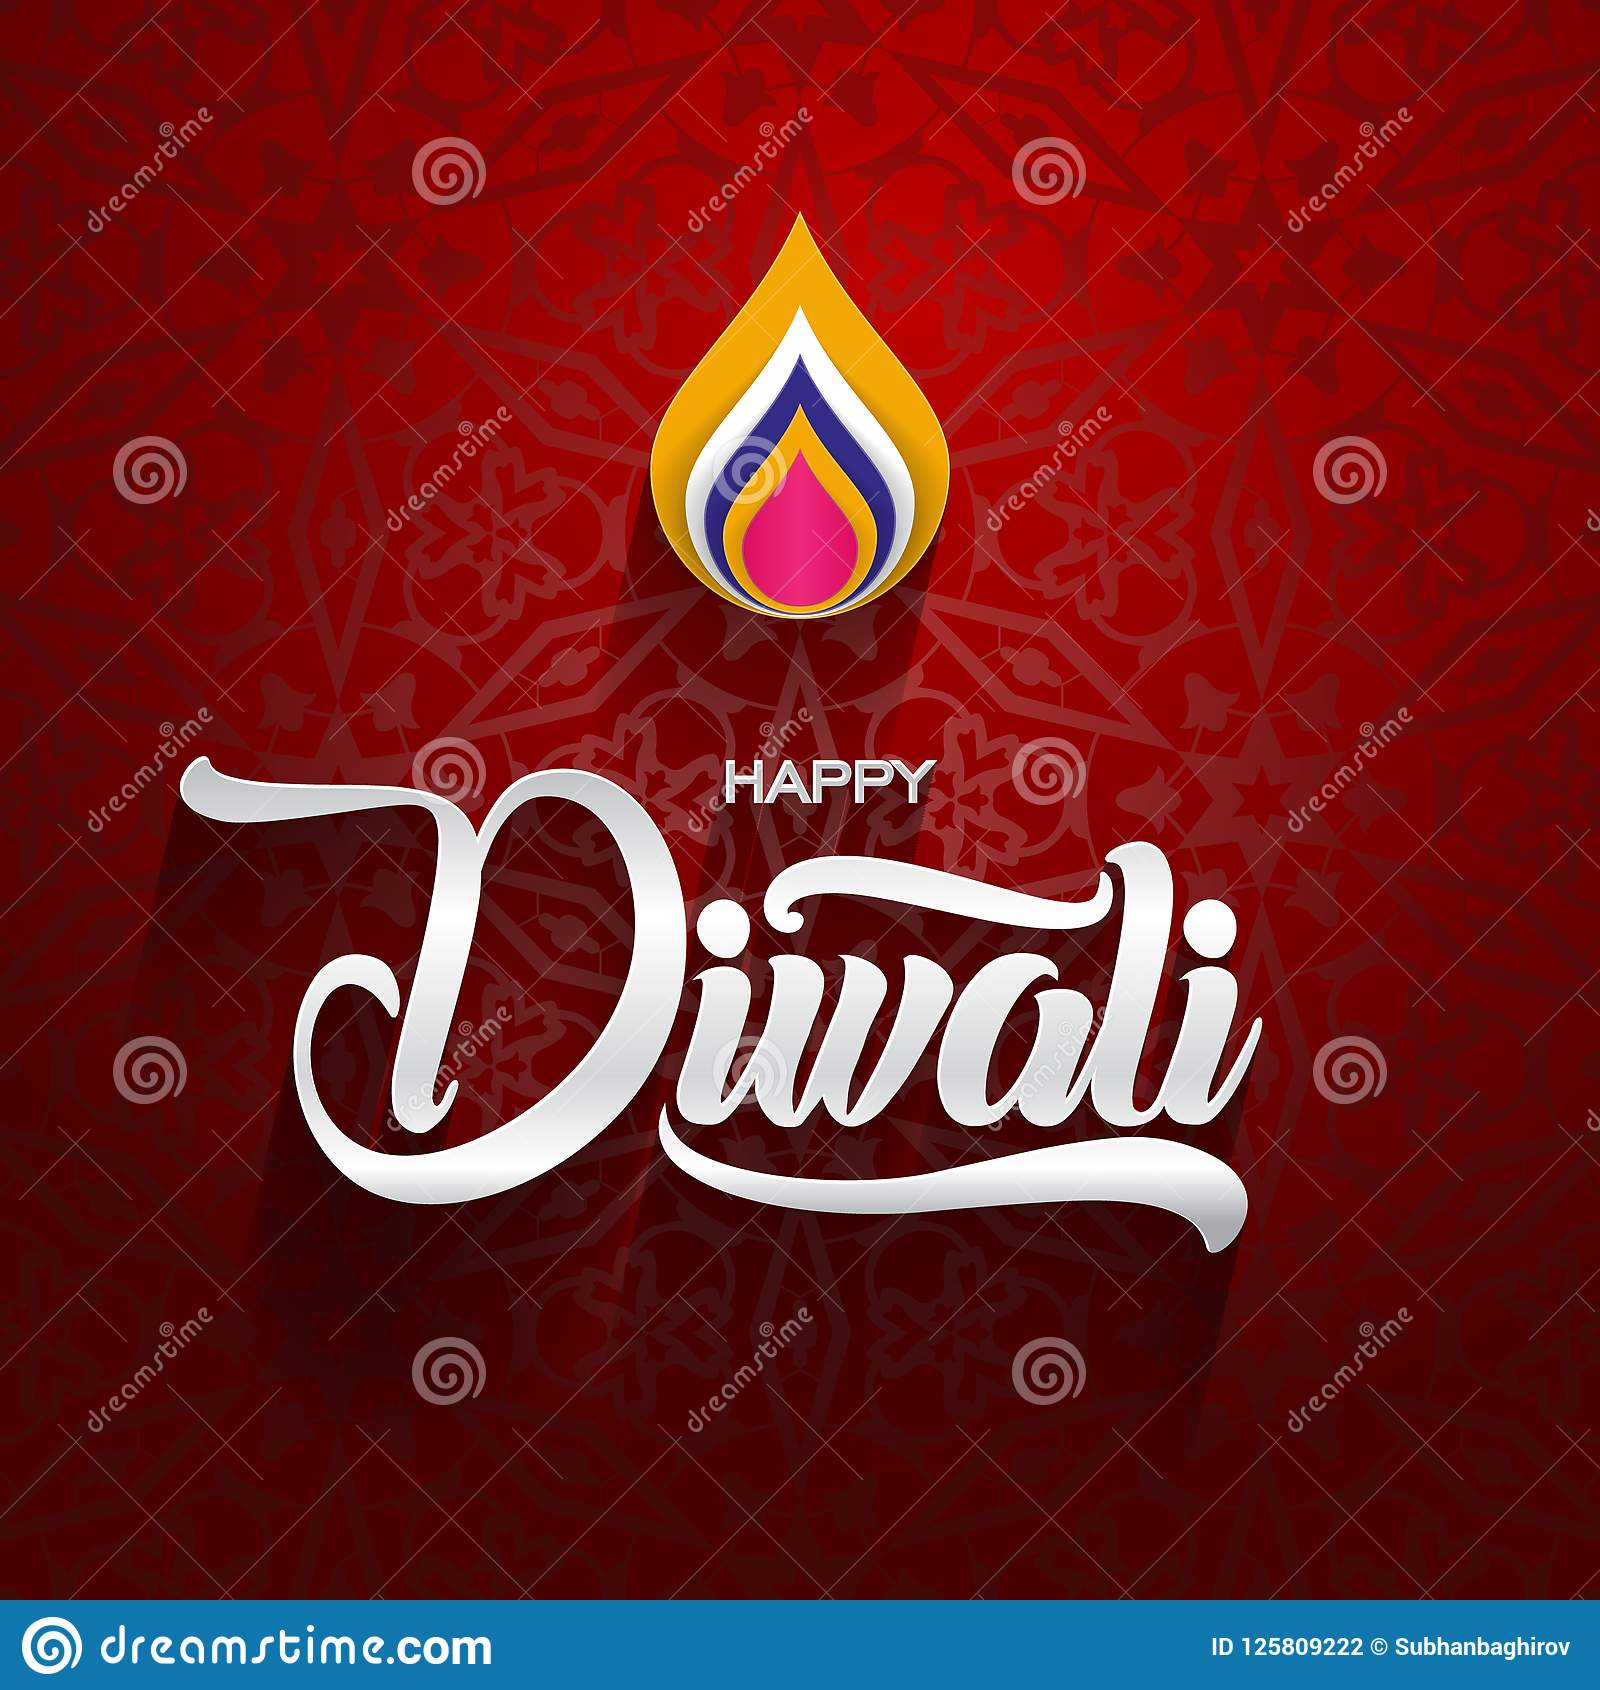 Happy diwali traditional indian festival greeting card with ornament download happy diwali traditional indian festival greeting card with ornament background vector illustration stock vector m4hsunfo